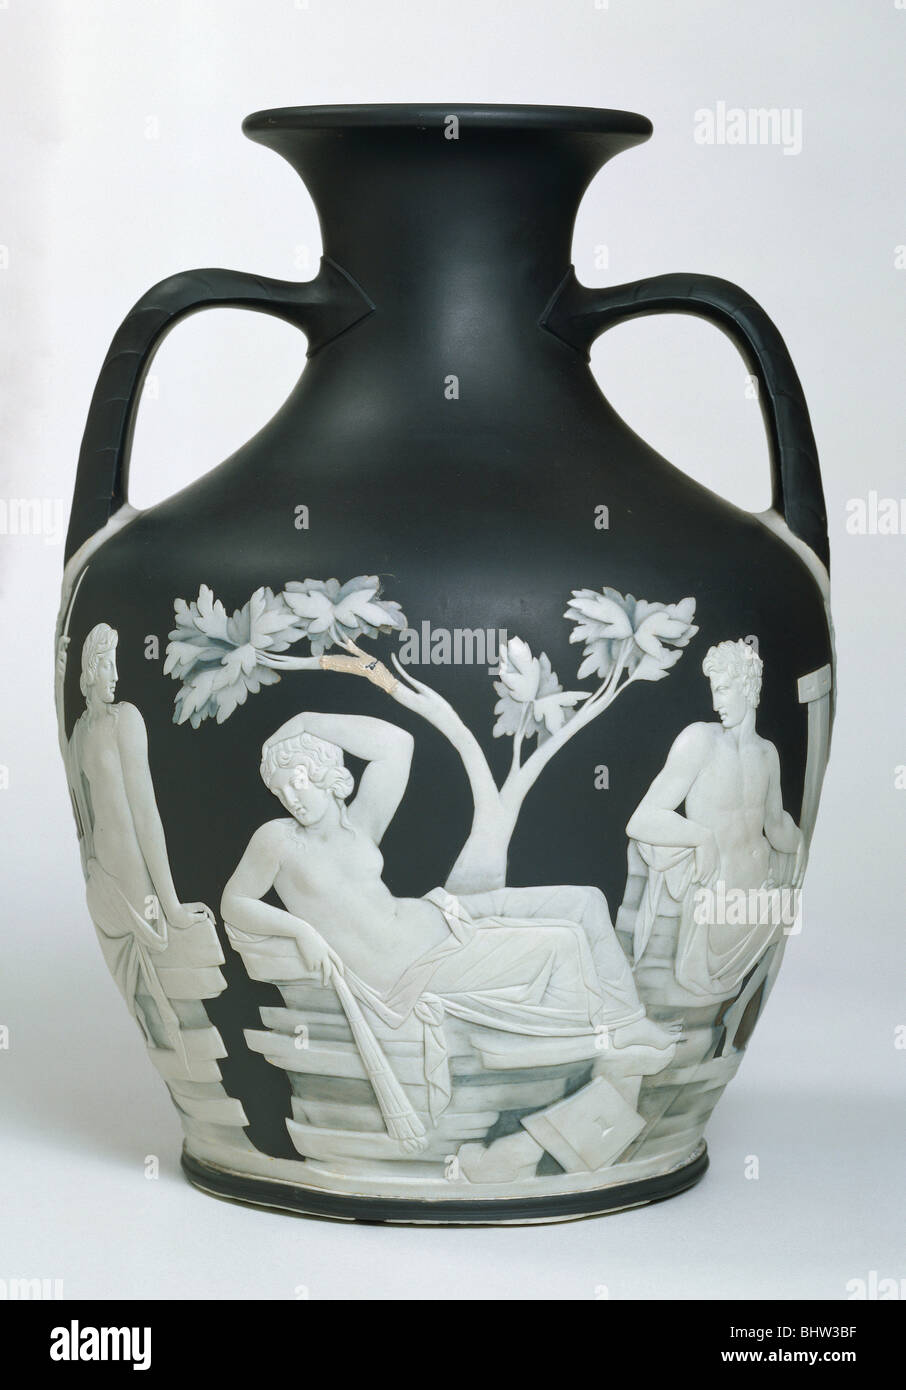 Portland vase by josiah wedgwood stoke on trent england late portland vase by josiah wedgwood stoke on trent england late 18th century reviewsmspy